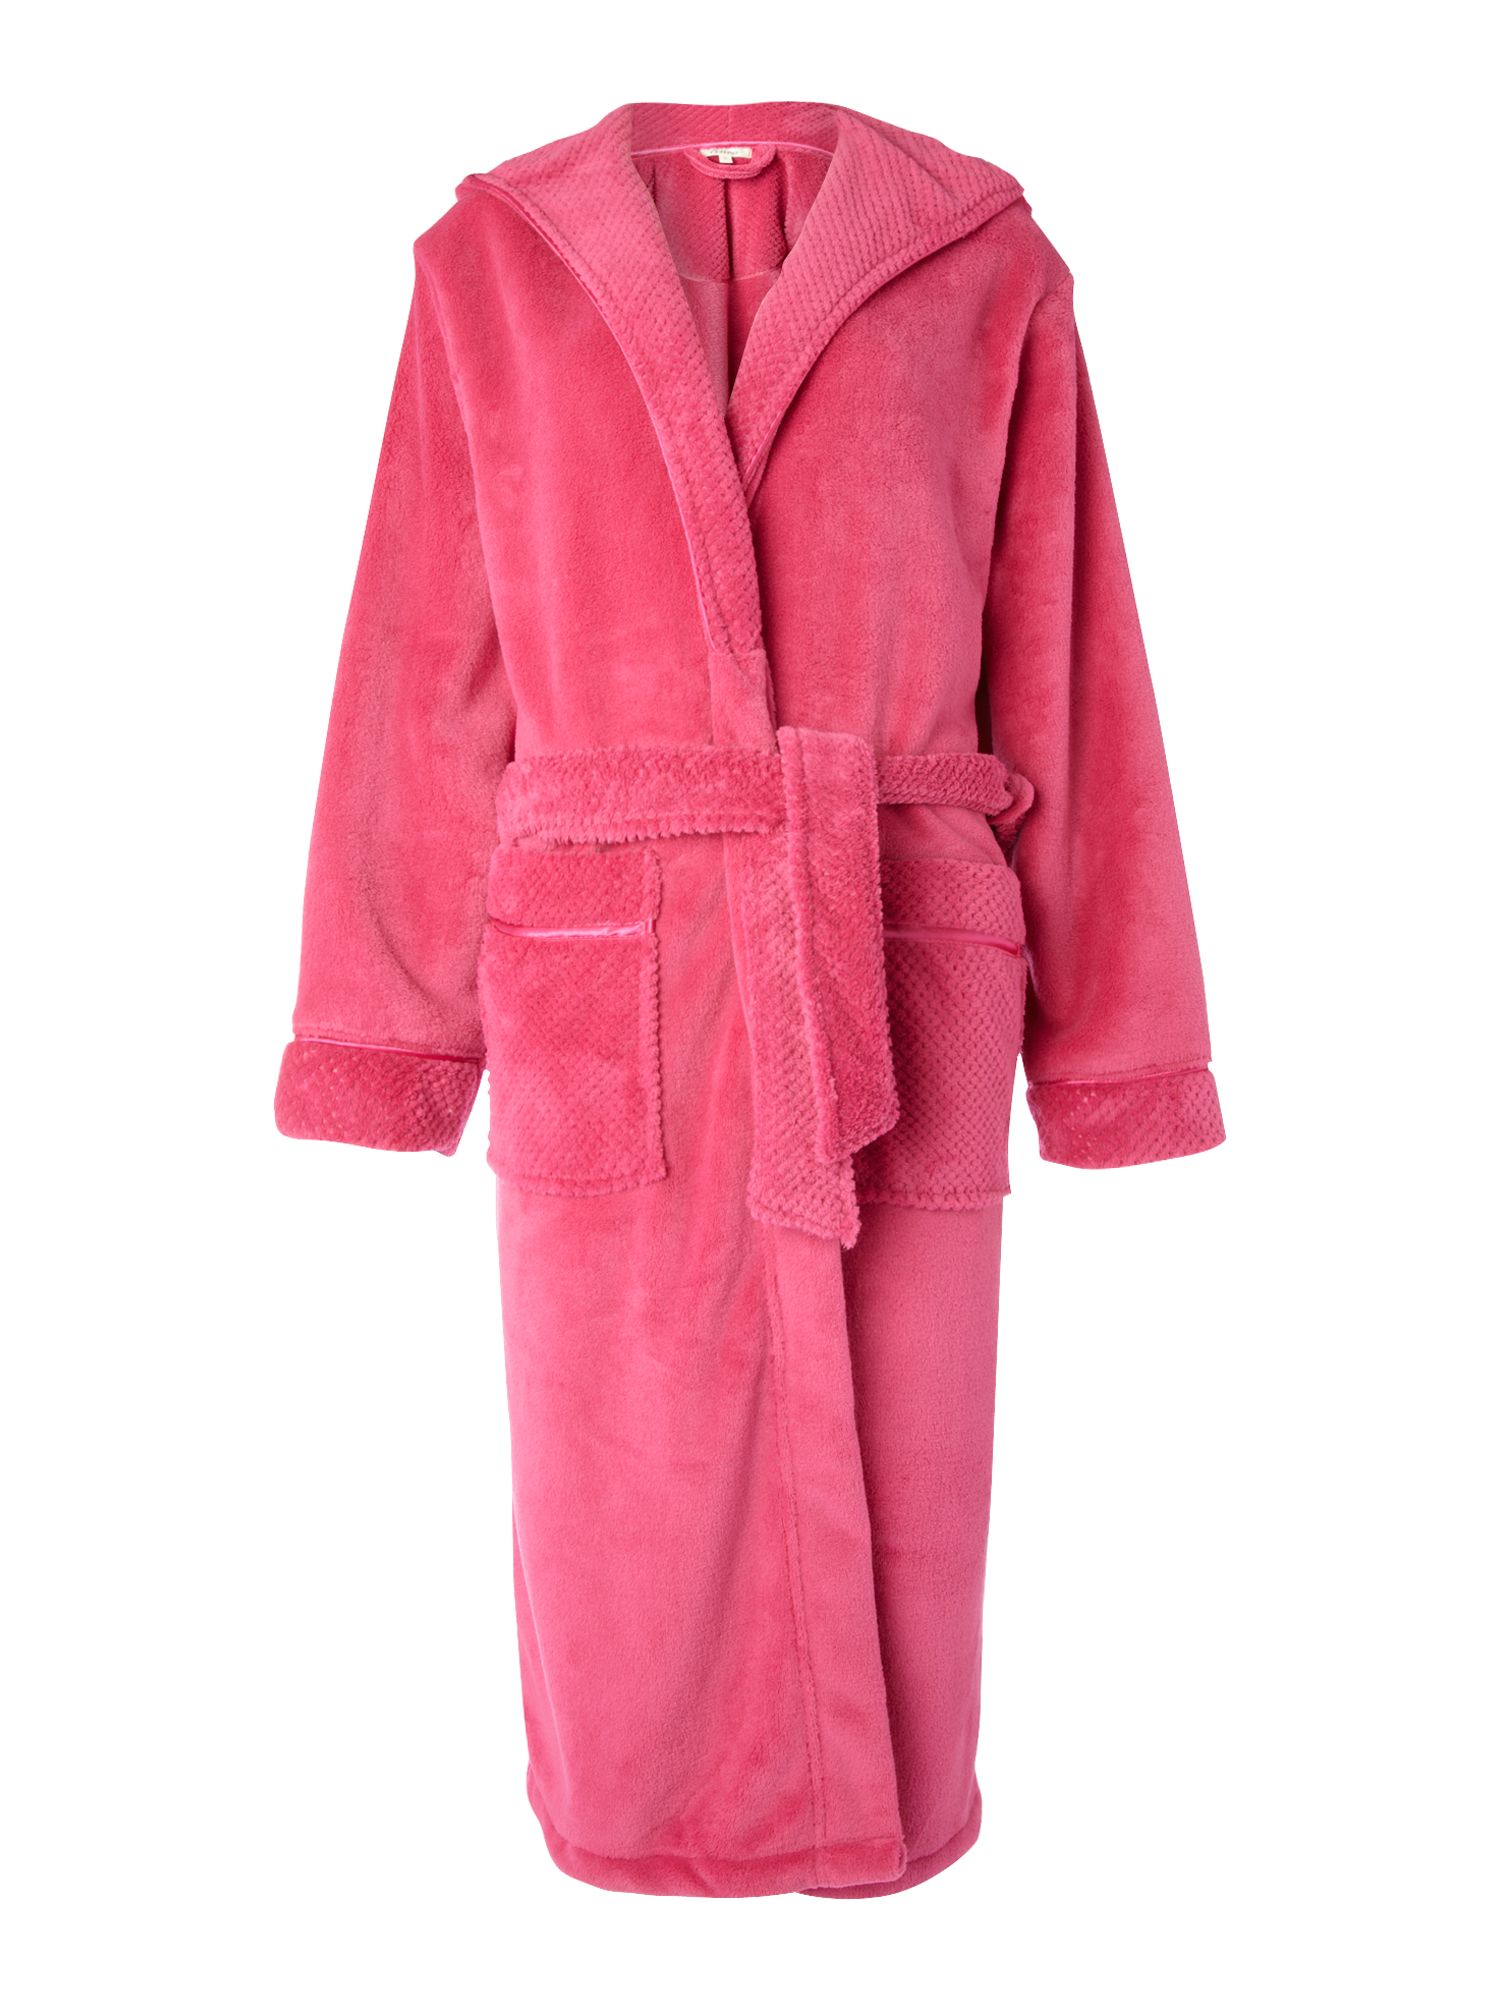 Women's Linea Cosy soft robe with hood, Fuchsia